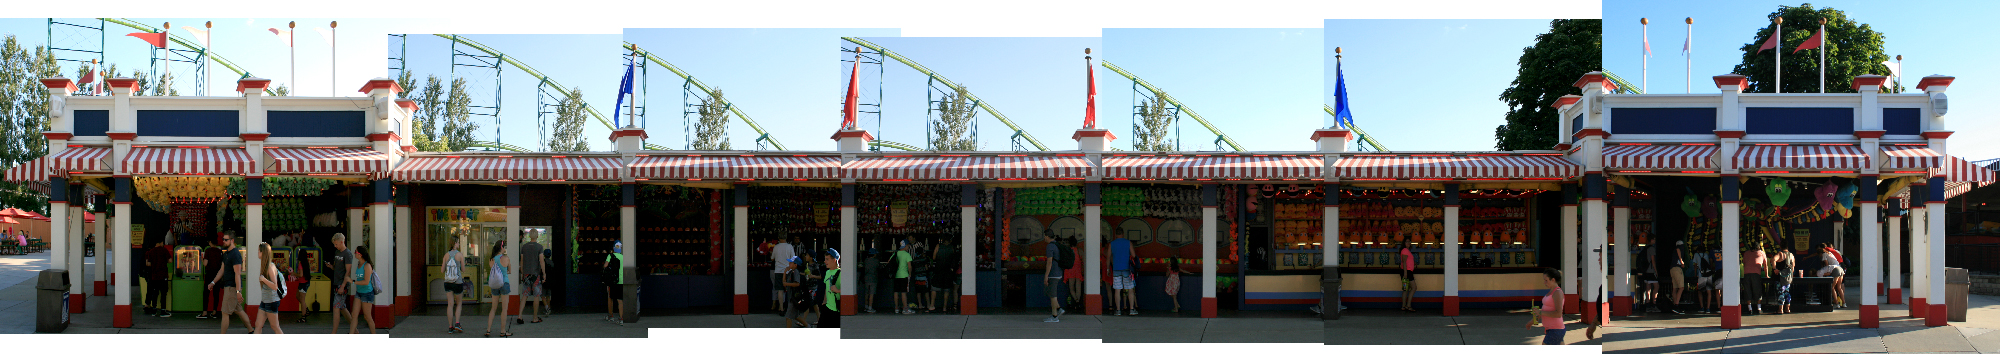 valleyfair-panorama-05.jpg